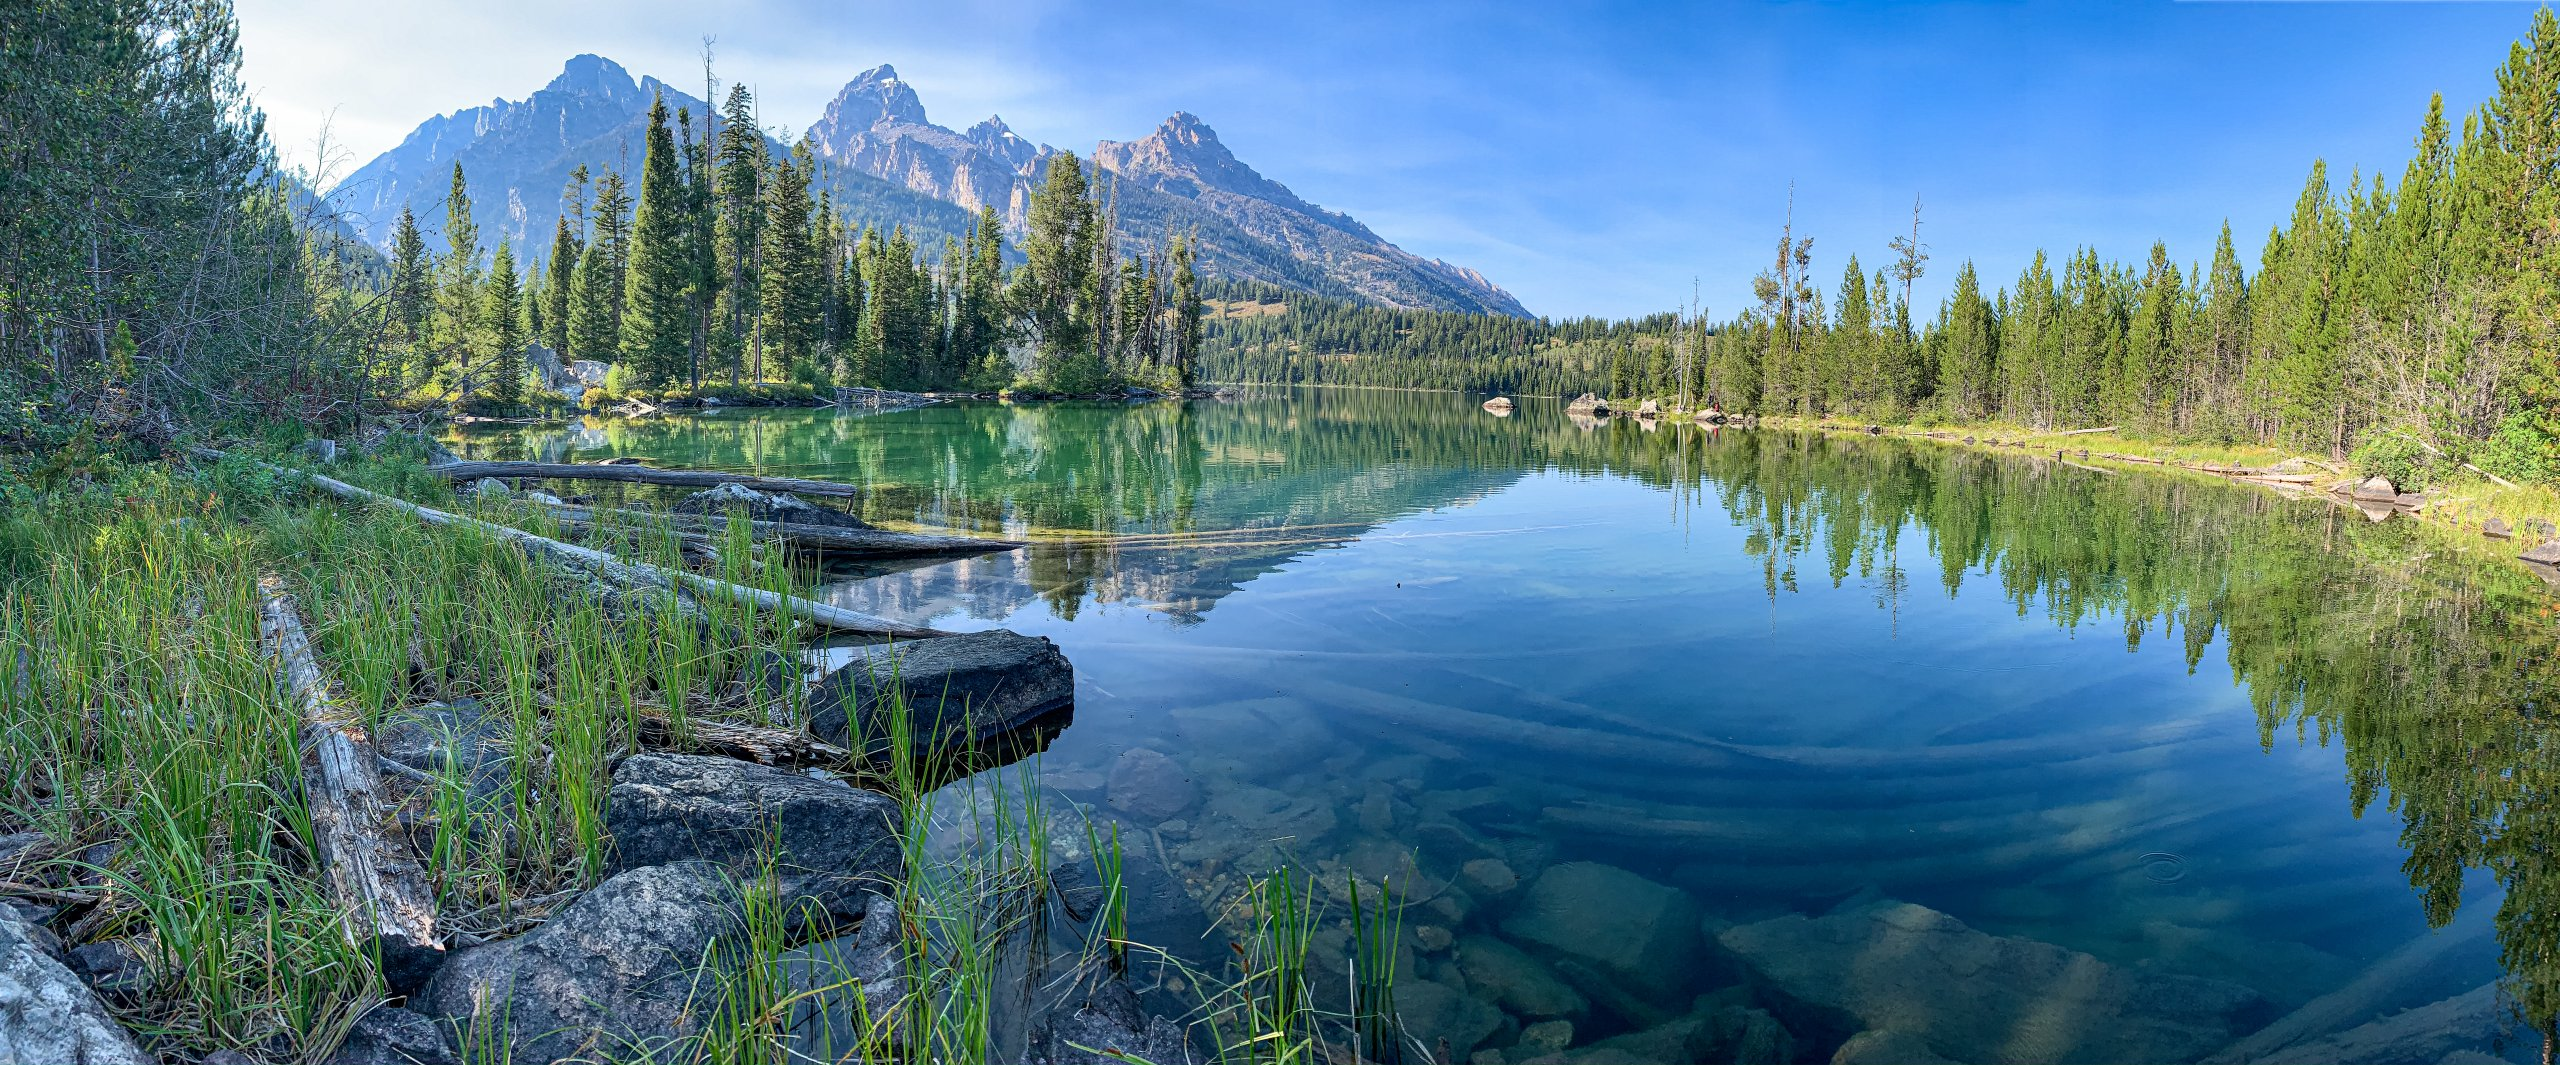 The Complete US National Park List